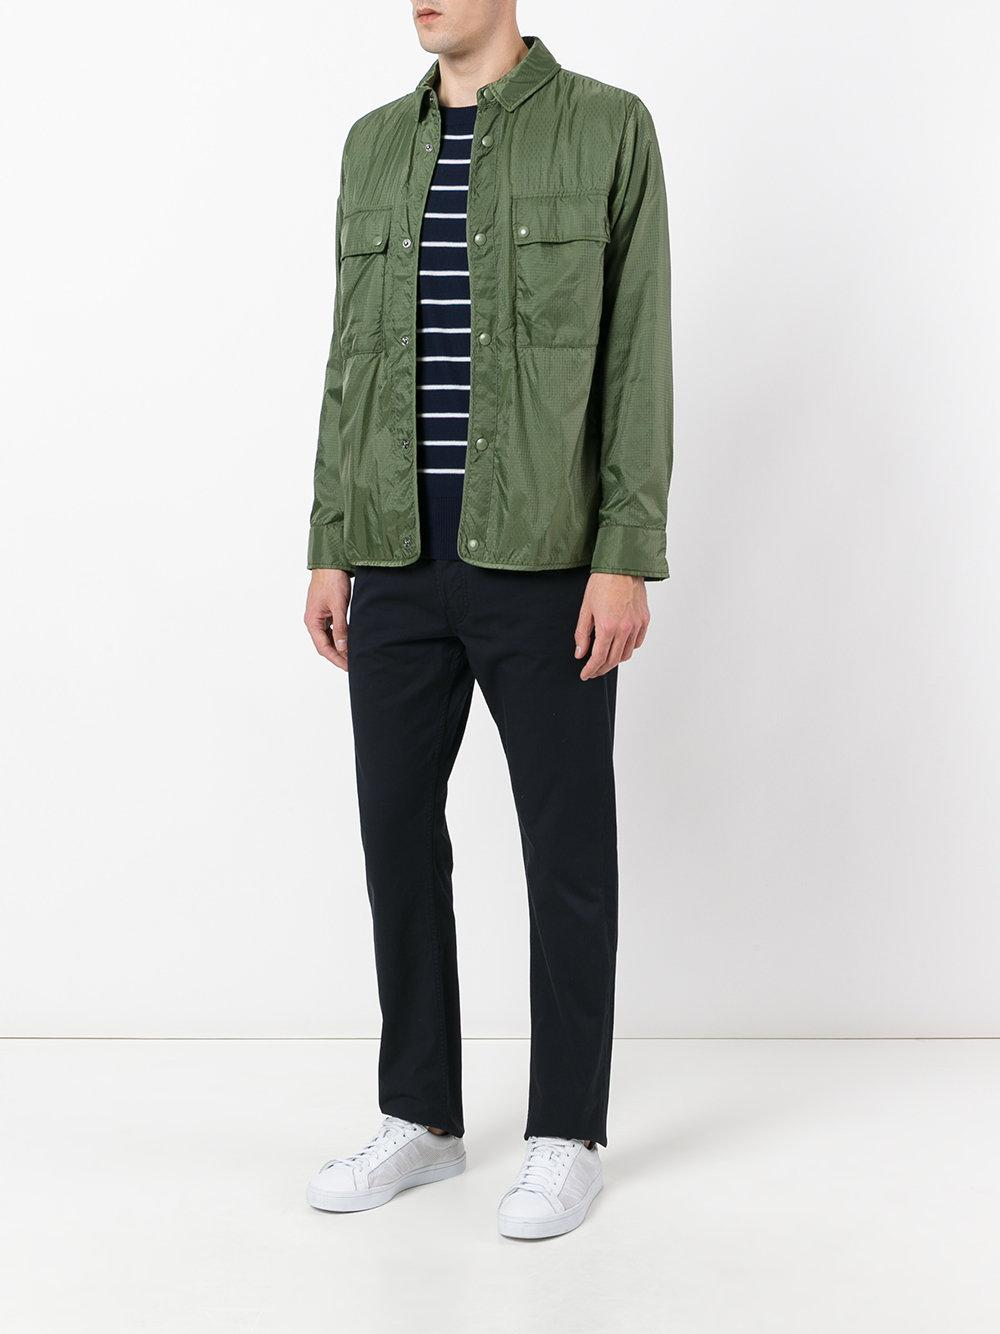 Sempach Cotton 'maske Ripstop' Worker Jacket in Green for Men